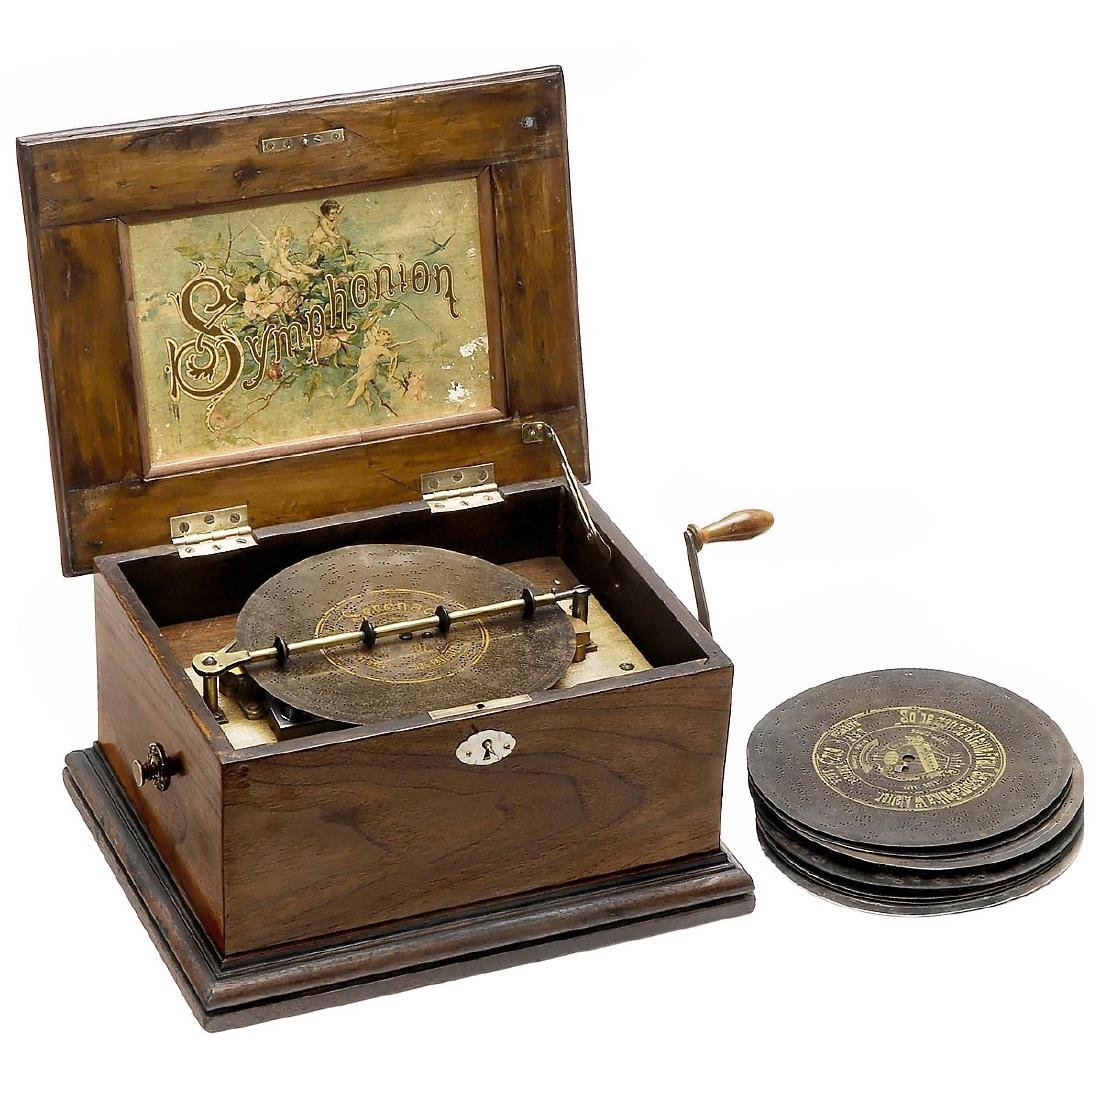 Symphonion No. 2 Disc Musical Box, c. 1900